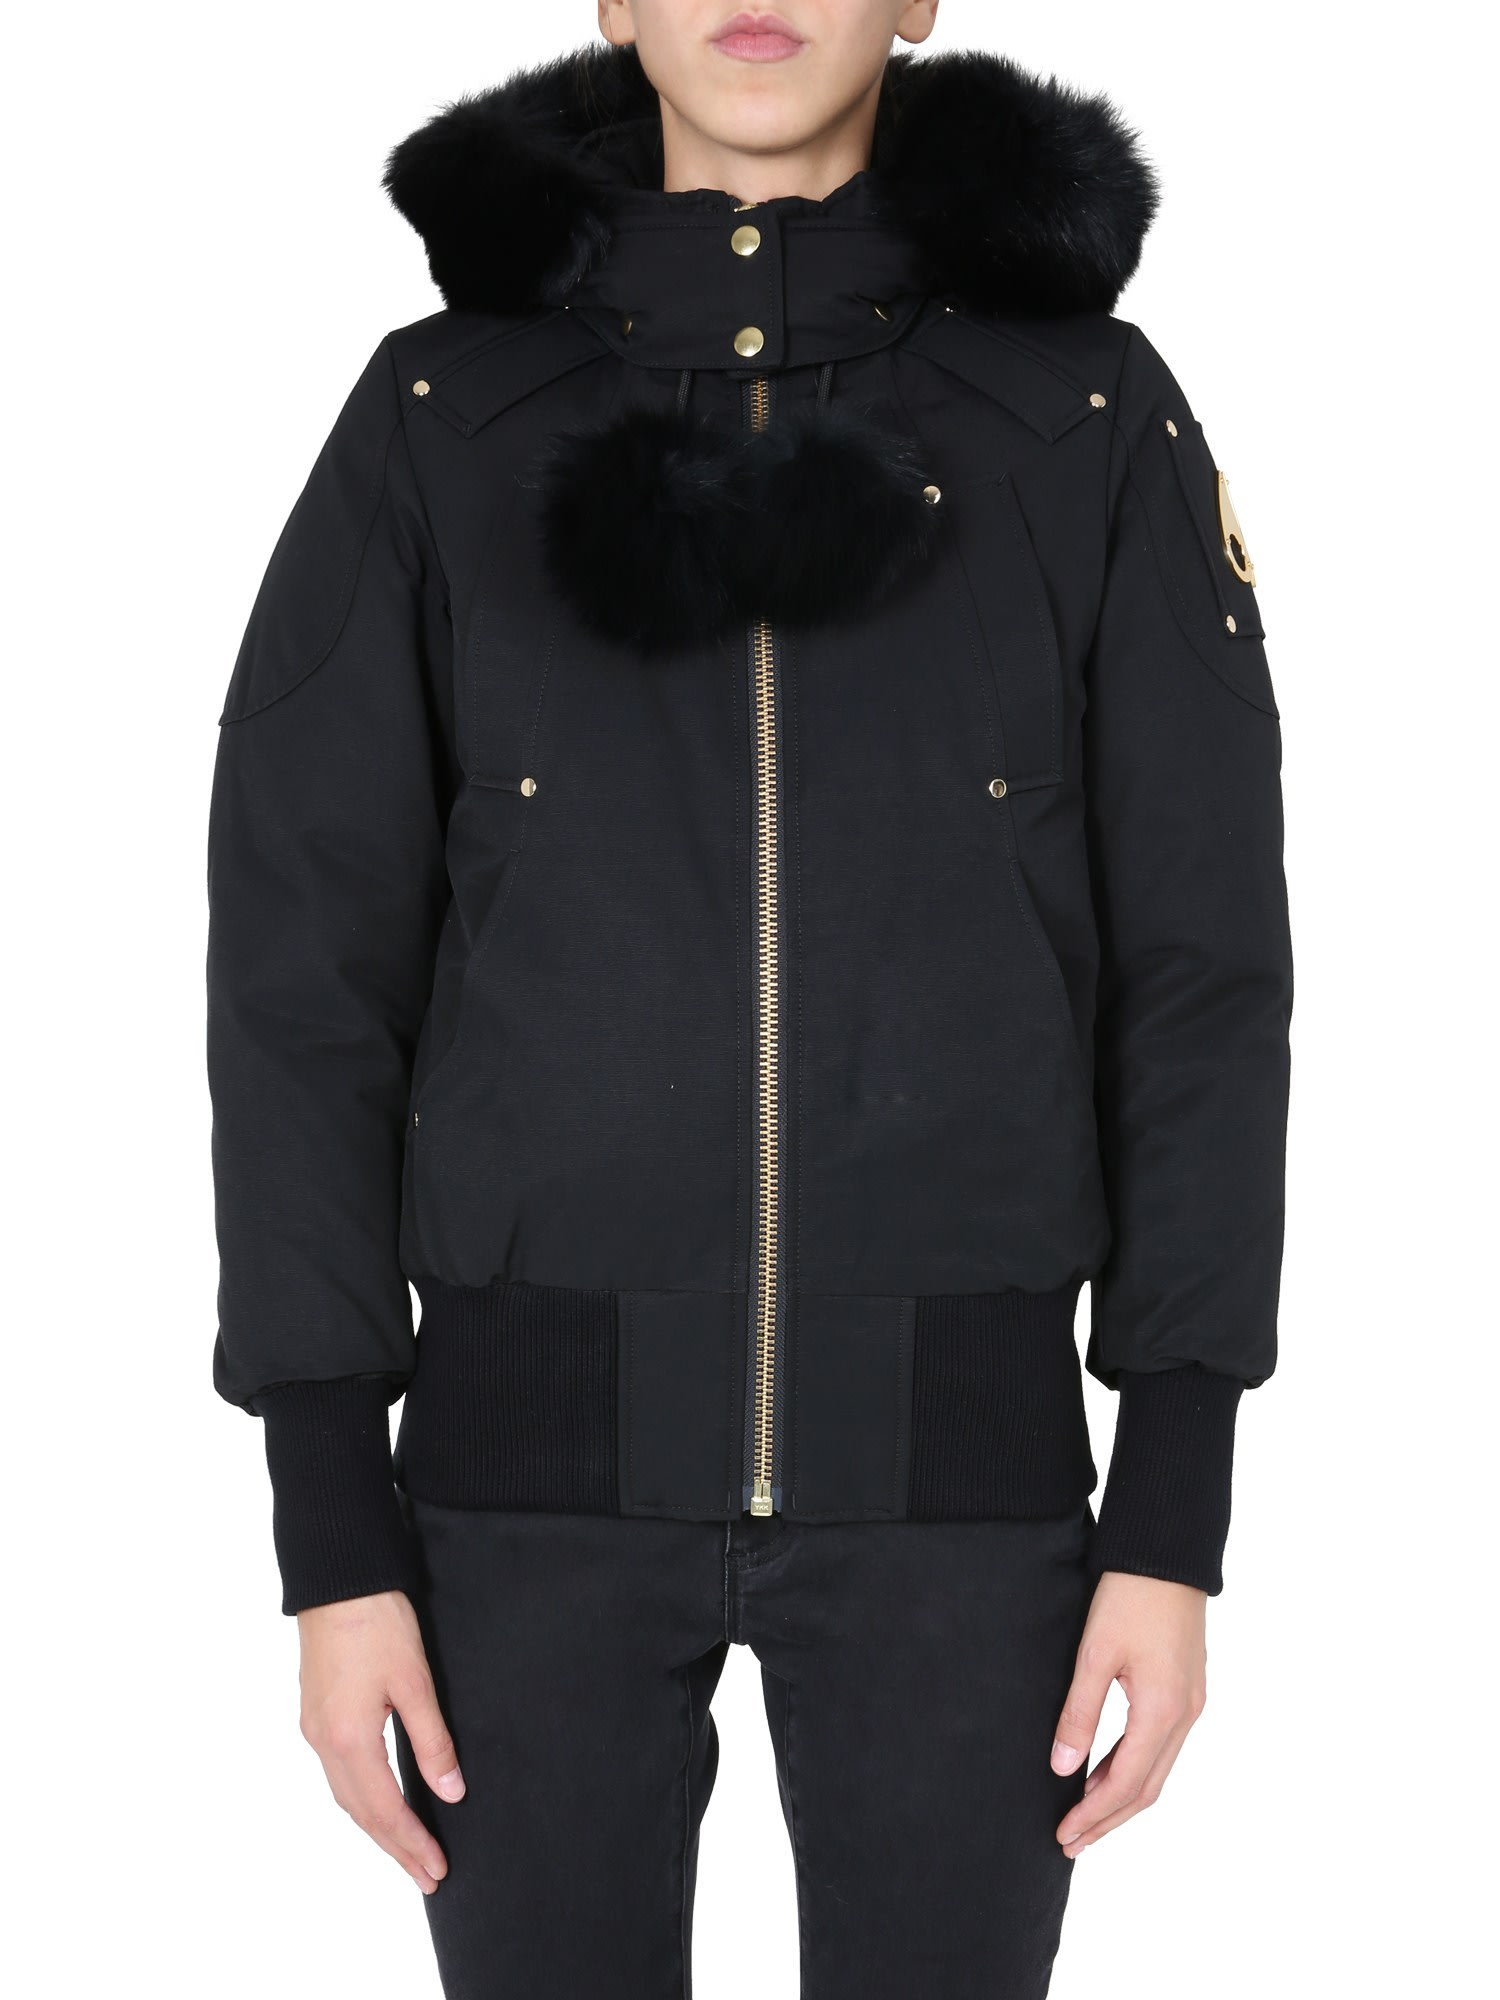 Moose Knuckles SAINTE FLAVIE BOMBER